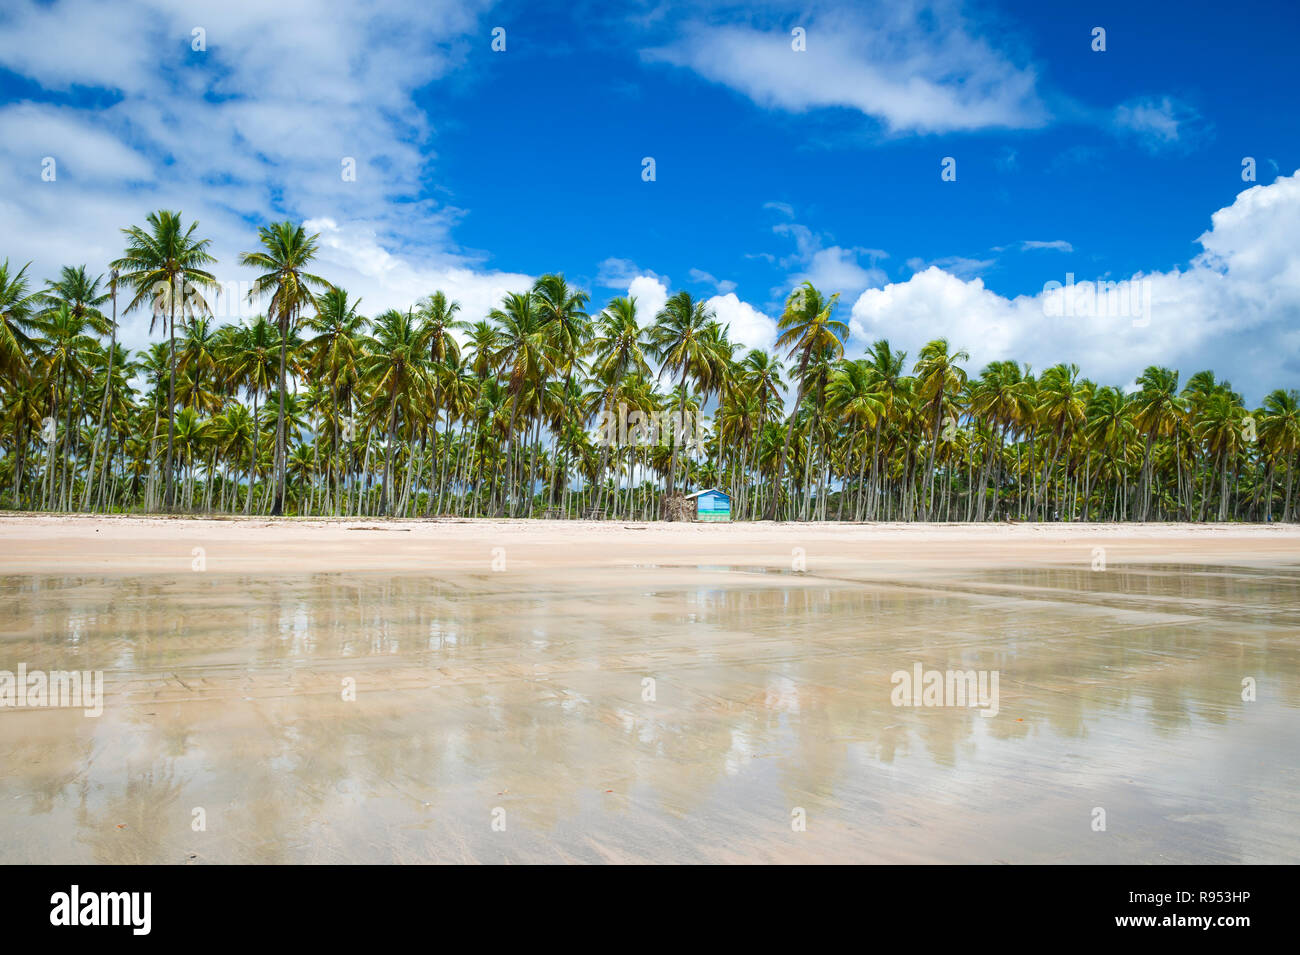 Scenic palm-fringed view of a wide empty beach reflecting tropical clouds on a rustic beach on a remote island in Bahia, Brazil - Stock Image